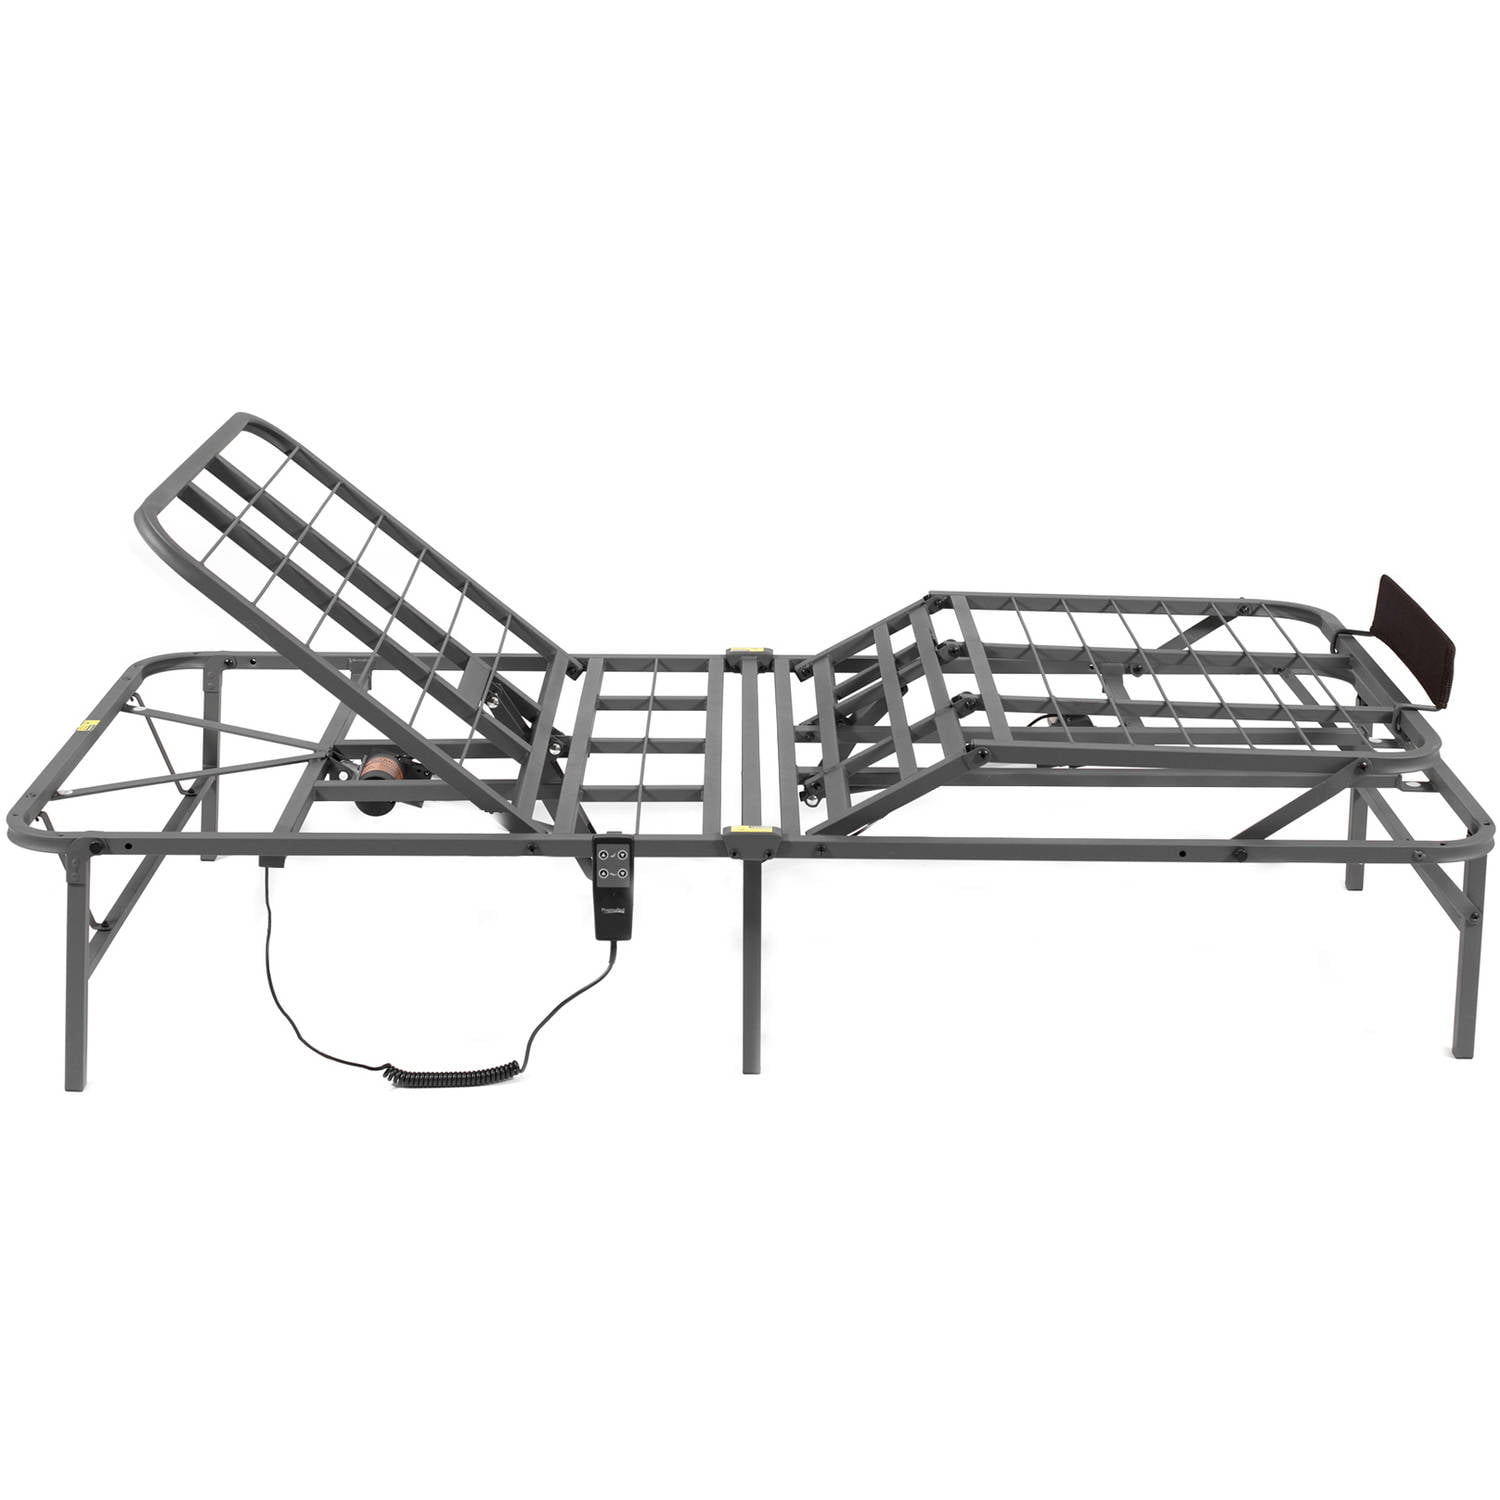 Engineered Adjustable Bed Frame 856 with Fixed Brackets and (6 ...